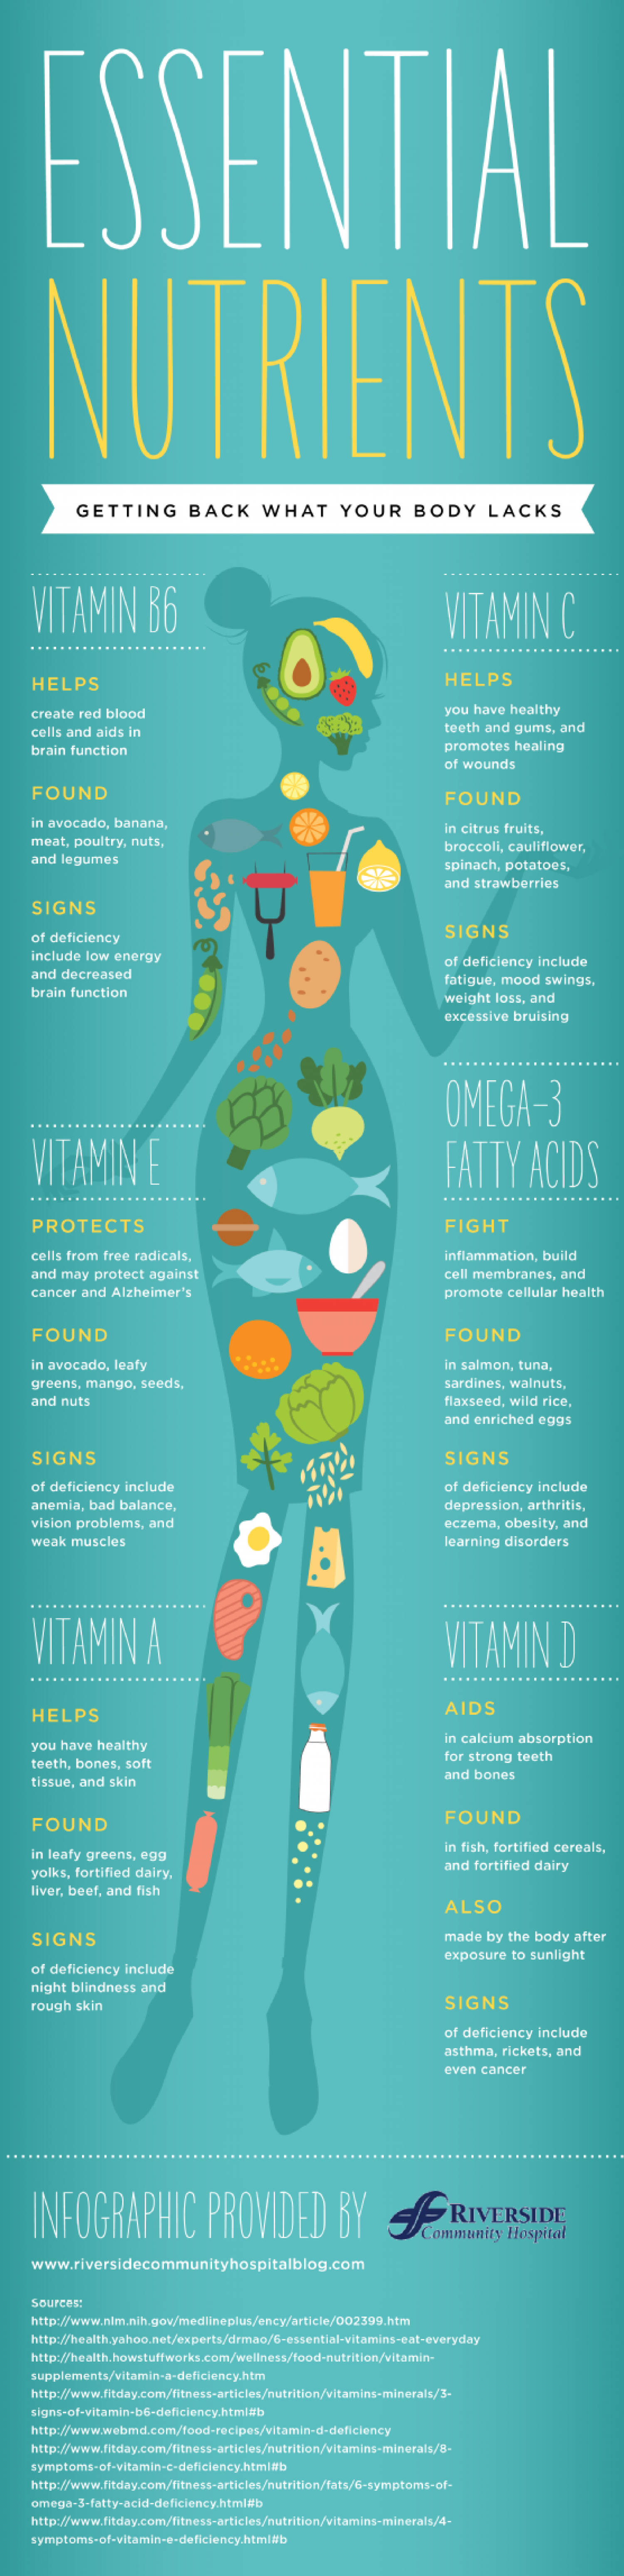 Essential Nutrients: Getting Back What Your Body Lacks  Infographic